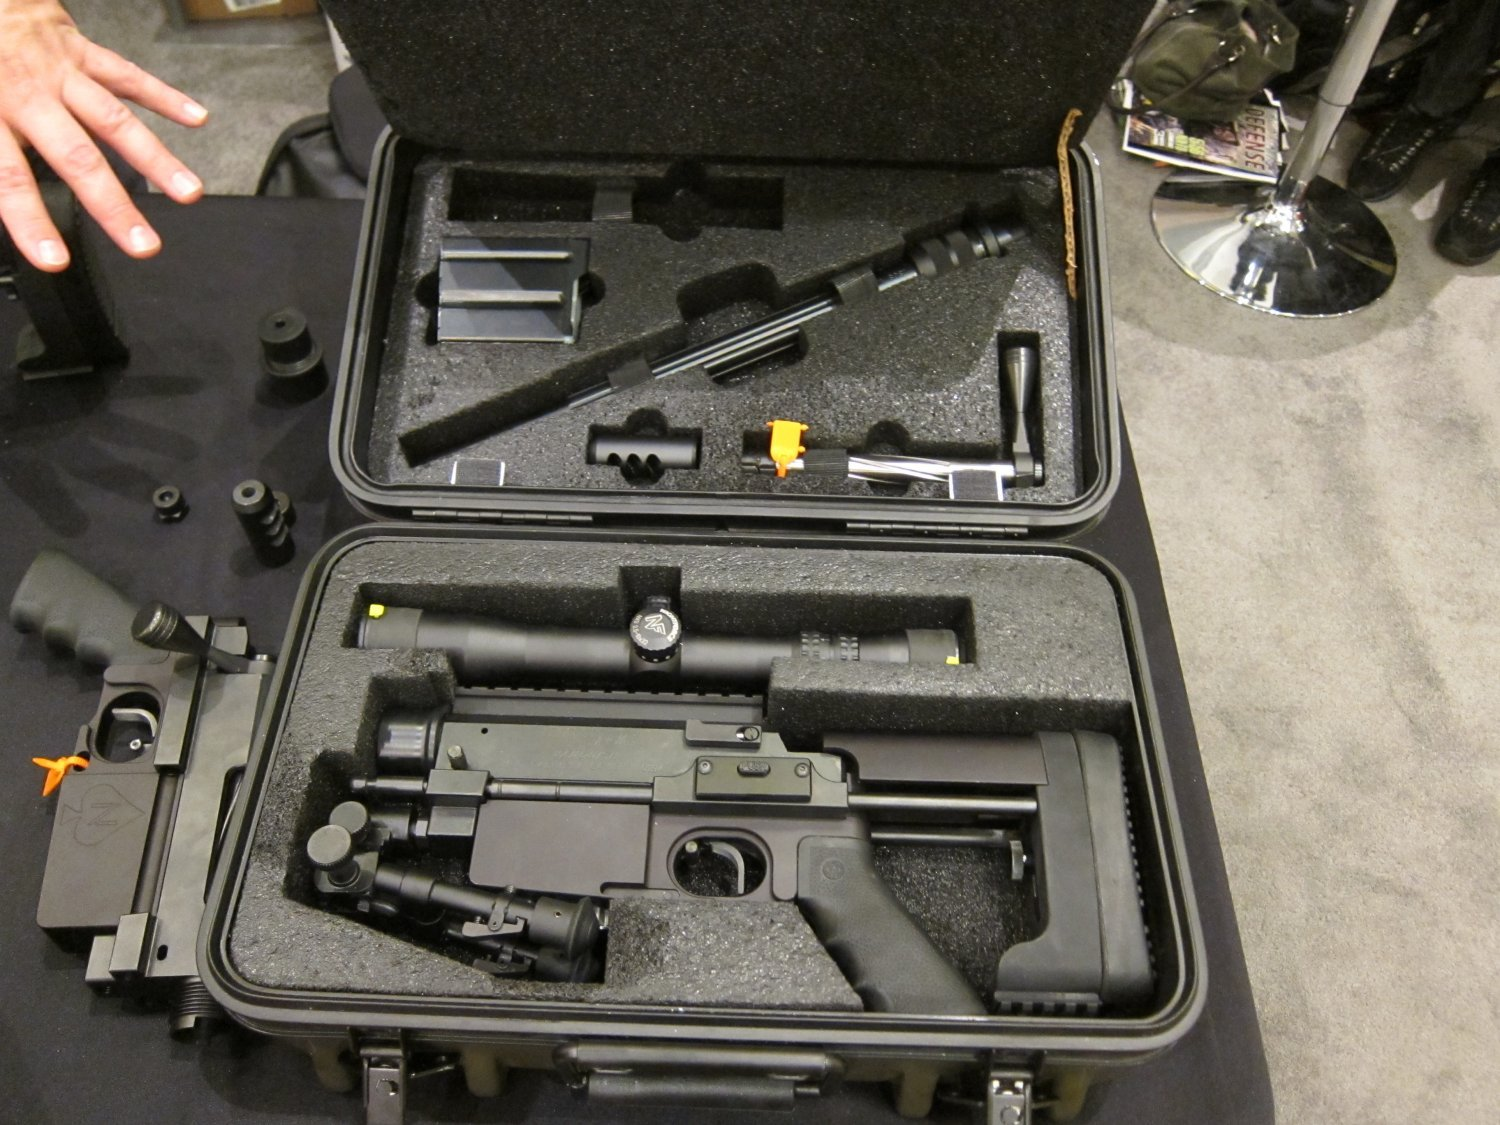 <!--:en-->Nemesis Arms Vanquish Mini-Windrunner-Type Lightweight Modular/Multi-Caliber Breakdown Sniper/Anti-materiel Rifle for Military Special Operations Combat and Civilian Tactical Shooting Applications: Nasty Little Piece of Manpackable/Backpackable Ballistic Business!<!--:-->